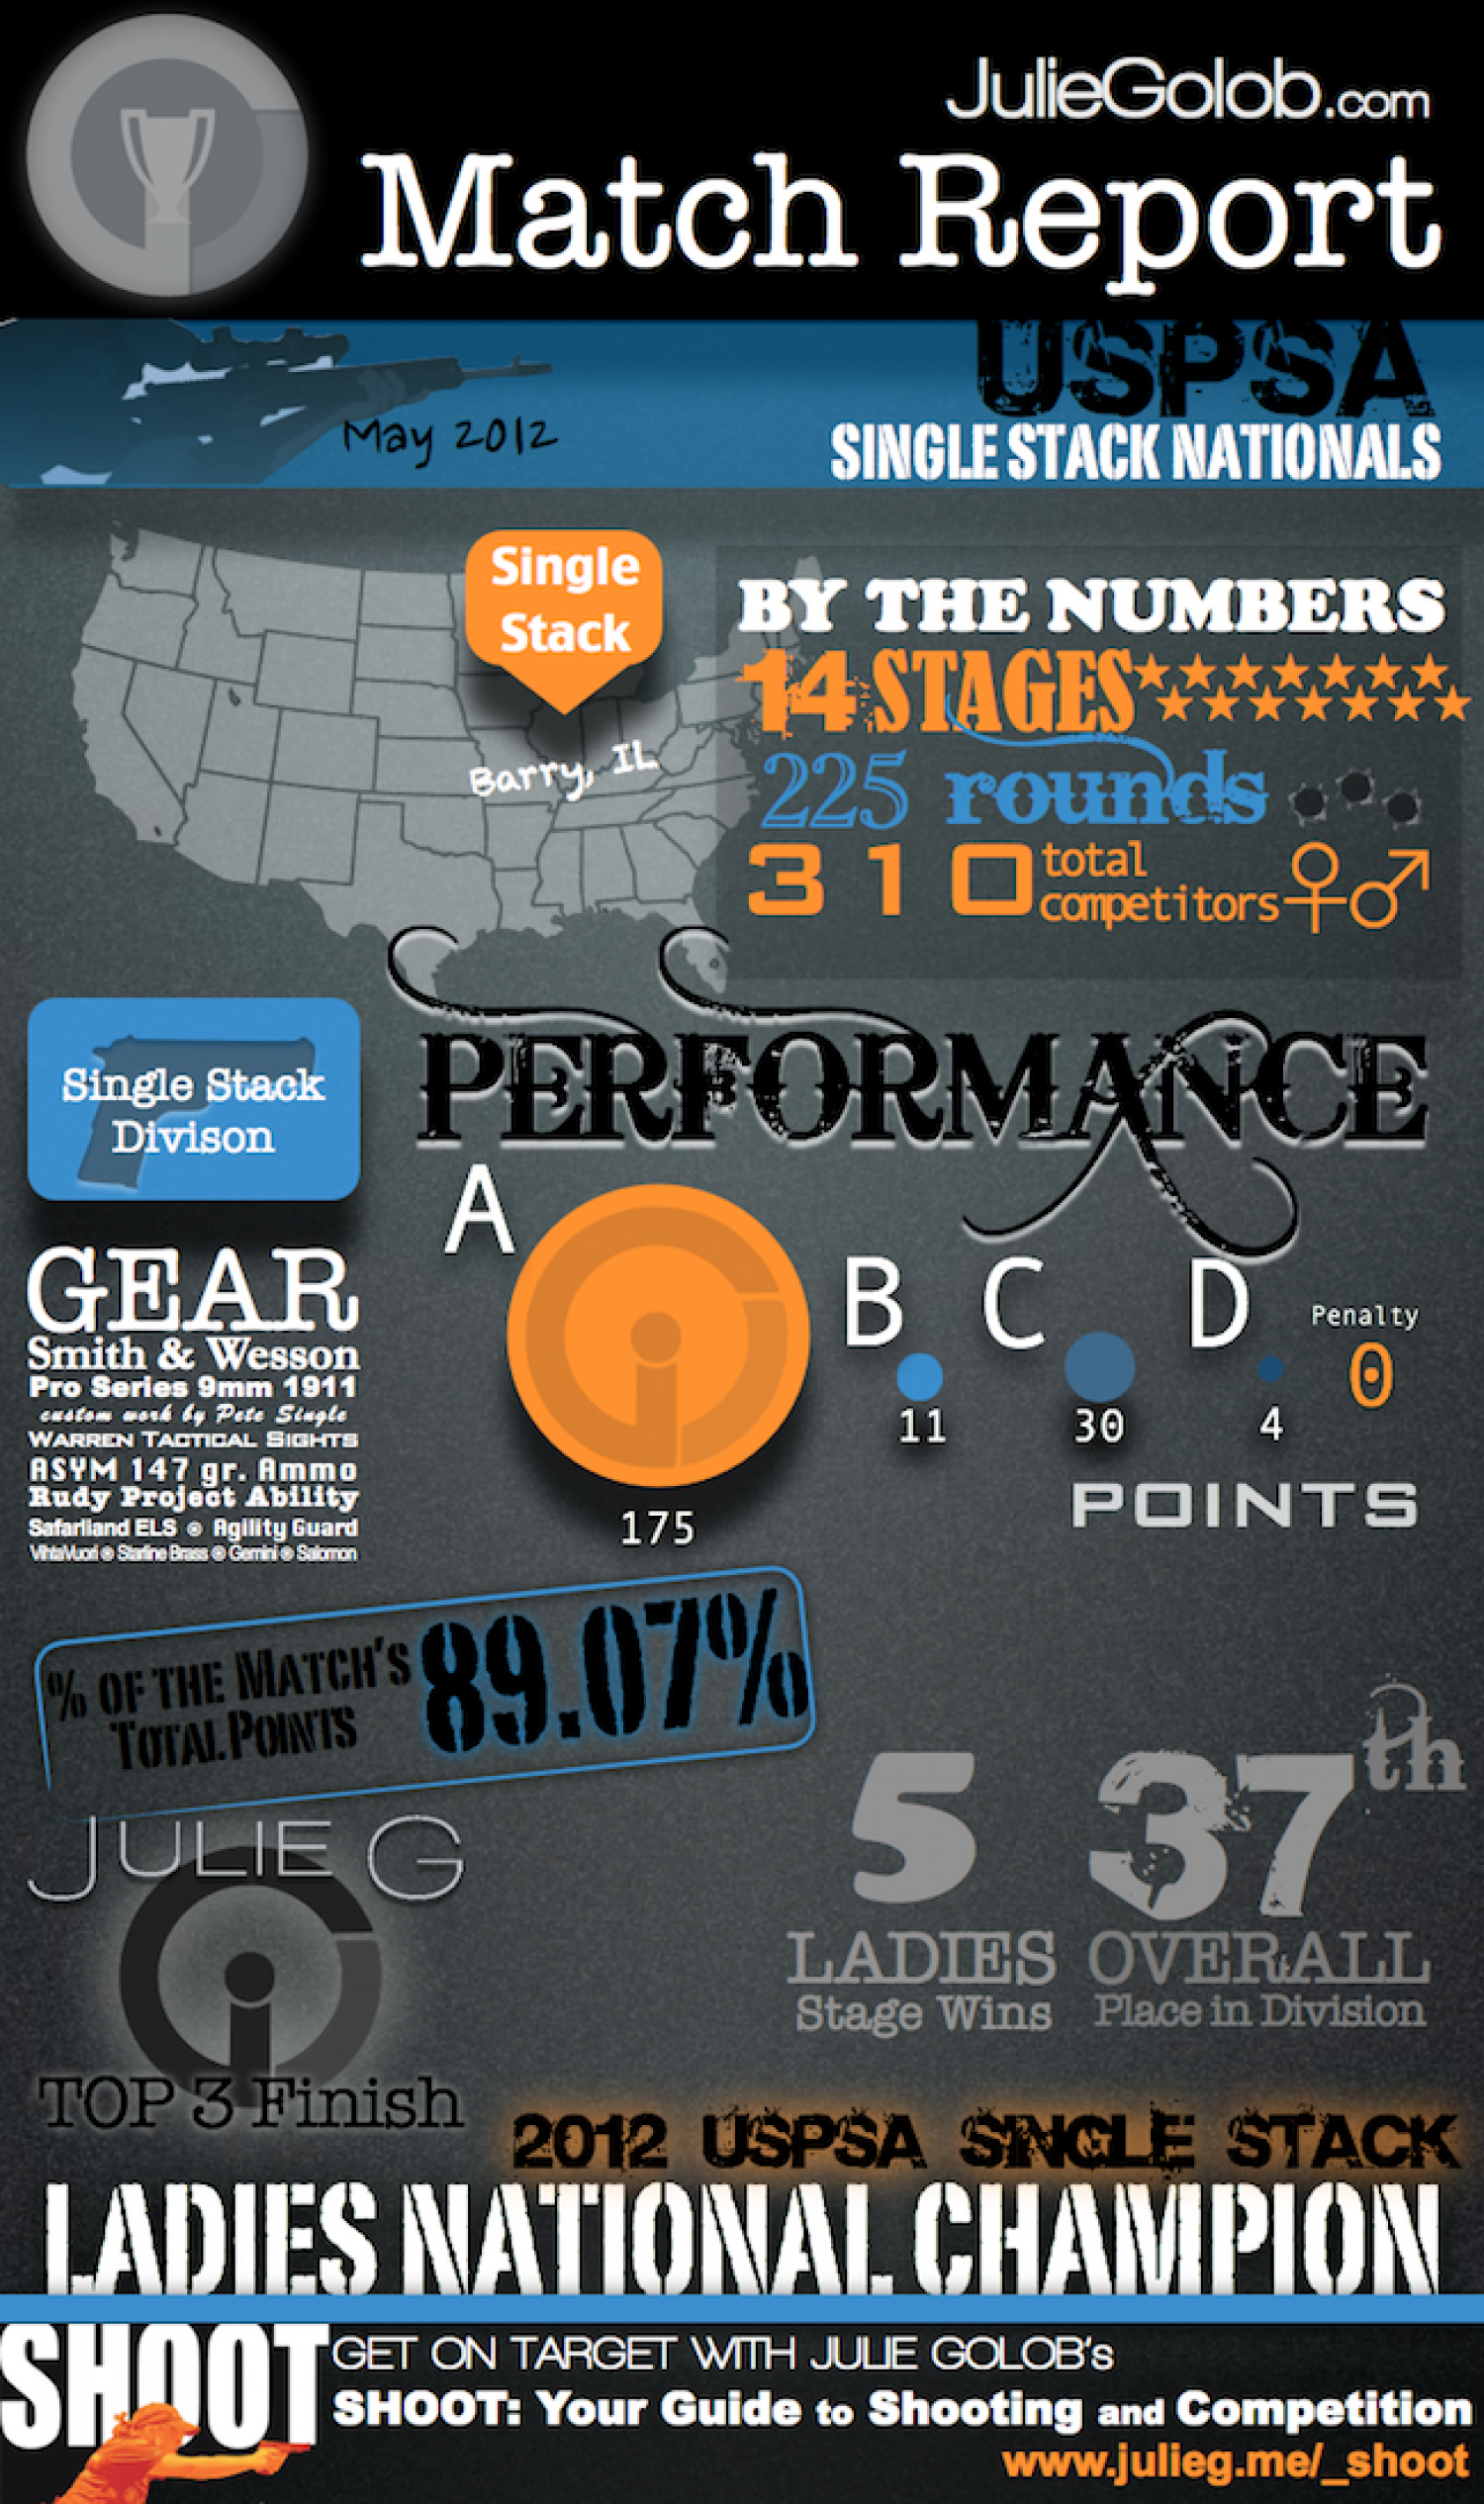 Match Report - 2012 USPSA Single Stack National Championships Infographic